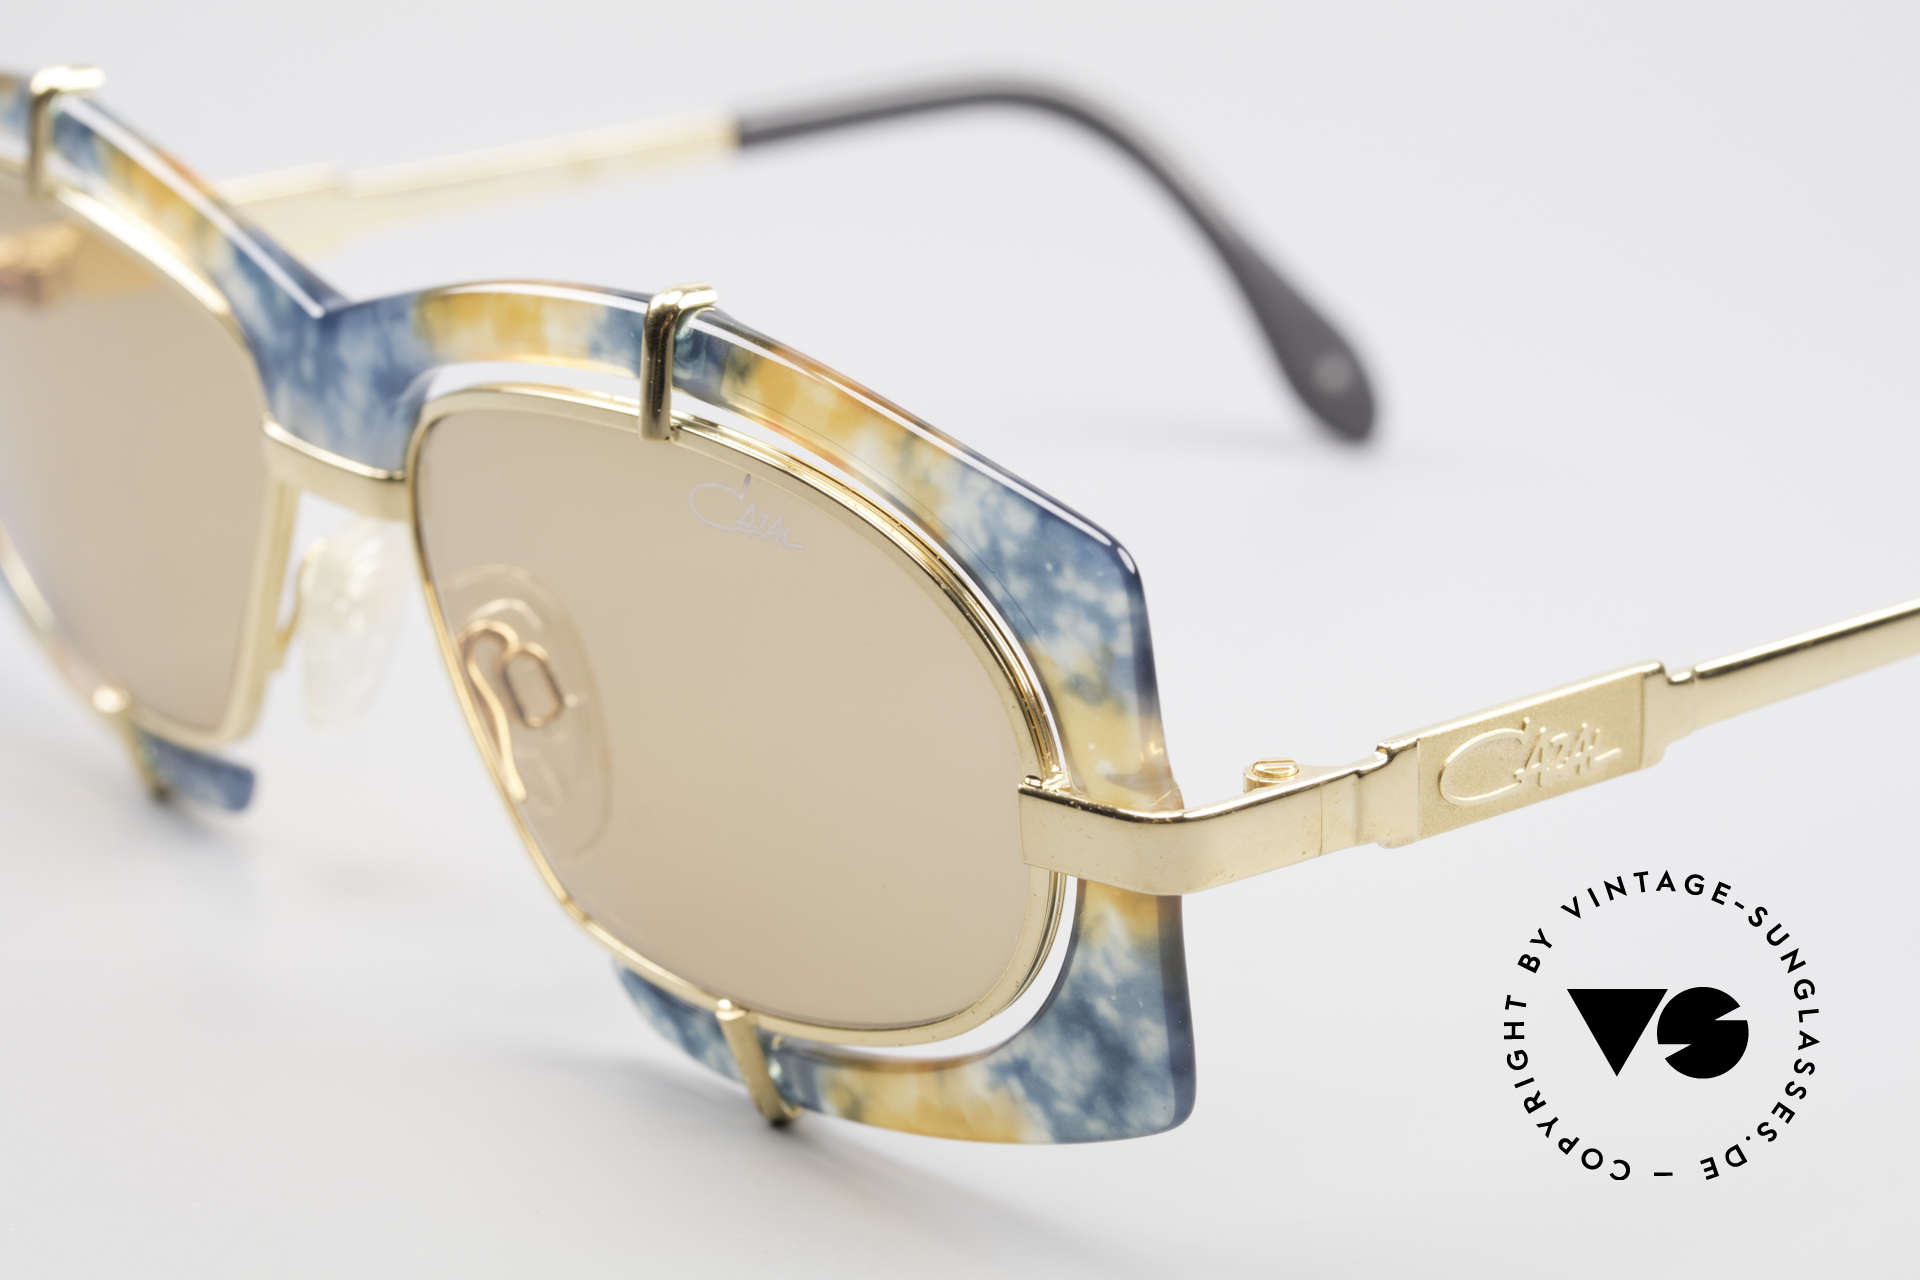 Cazal 872 Flashy Haute Couture Shades, thus, a sought-after HIP-HOP sunglasses, worldwide, Made for Men and Women